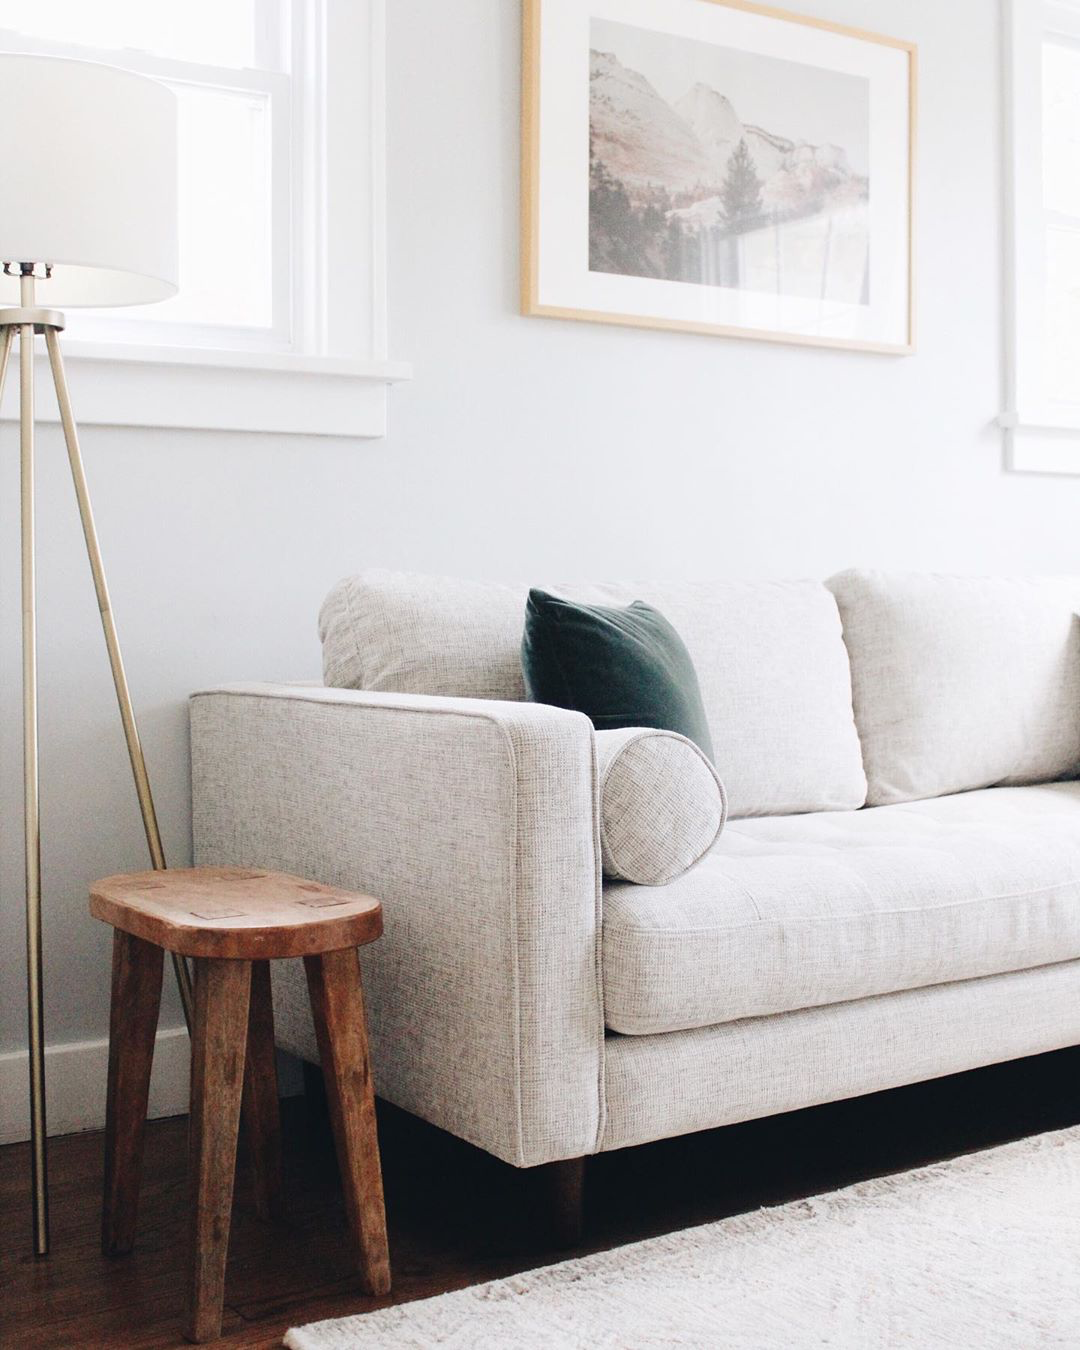 Layering various shades of whites and grays creates a serene, calming look. Photo by  @thejennaogle